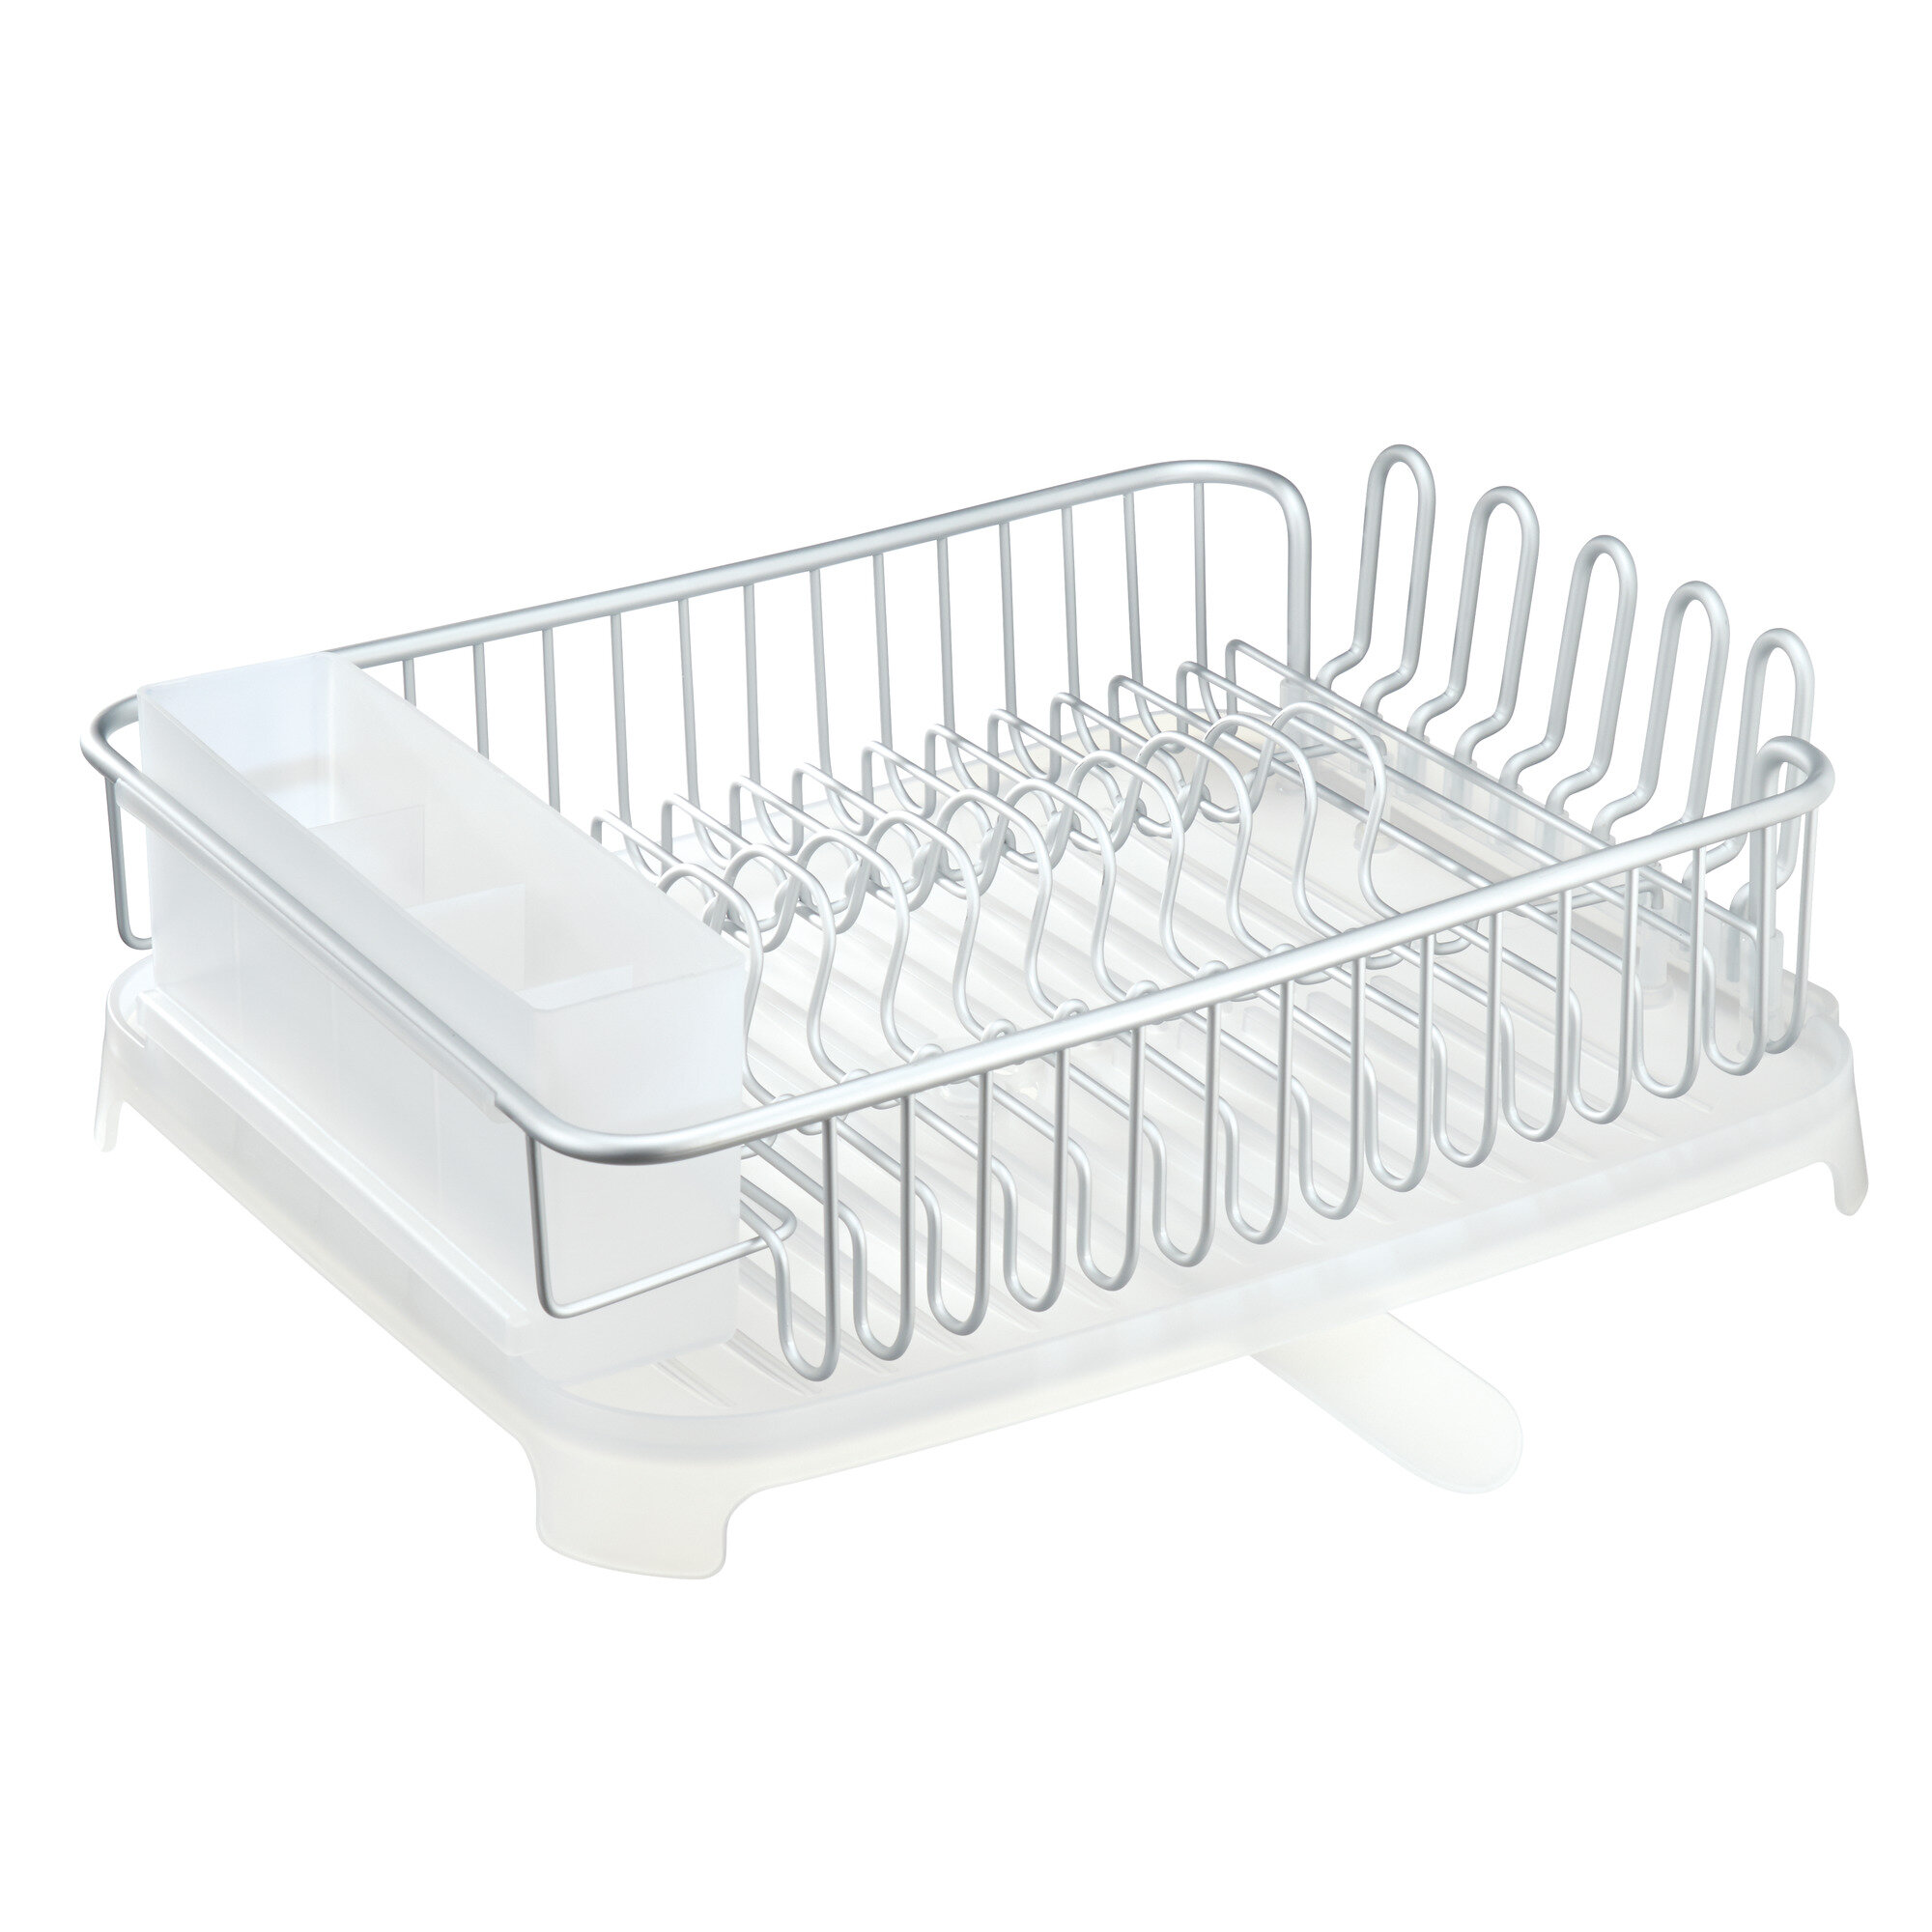 and shipping over cup garden draining orders dish with plastic white drain home overstock free utensil board on rack product